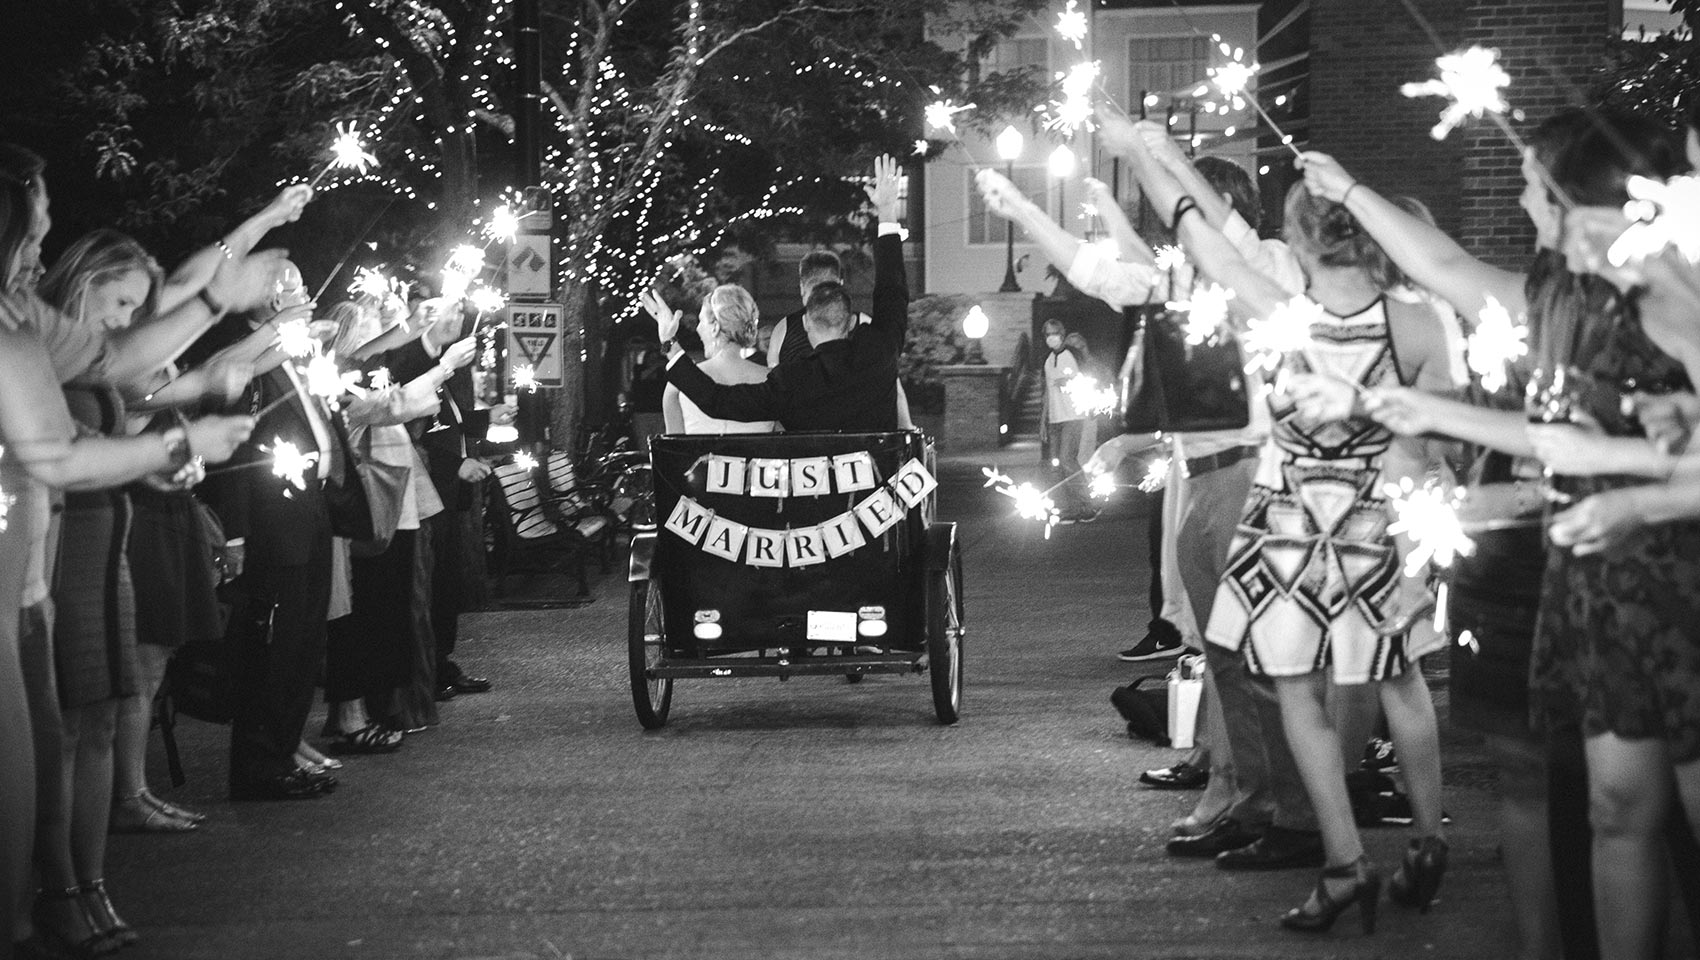 bride and groom riding in pedicab at wedding ceremony at outdoor Portland wedding venue